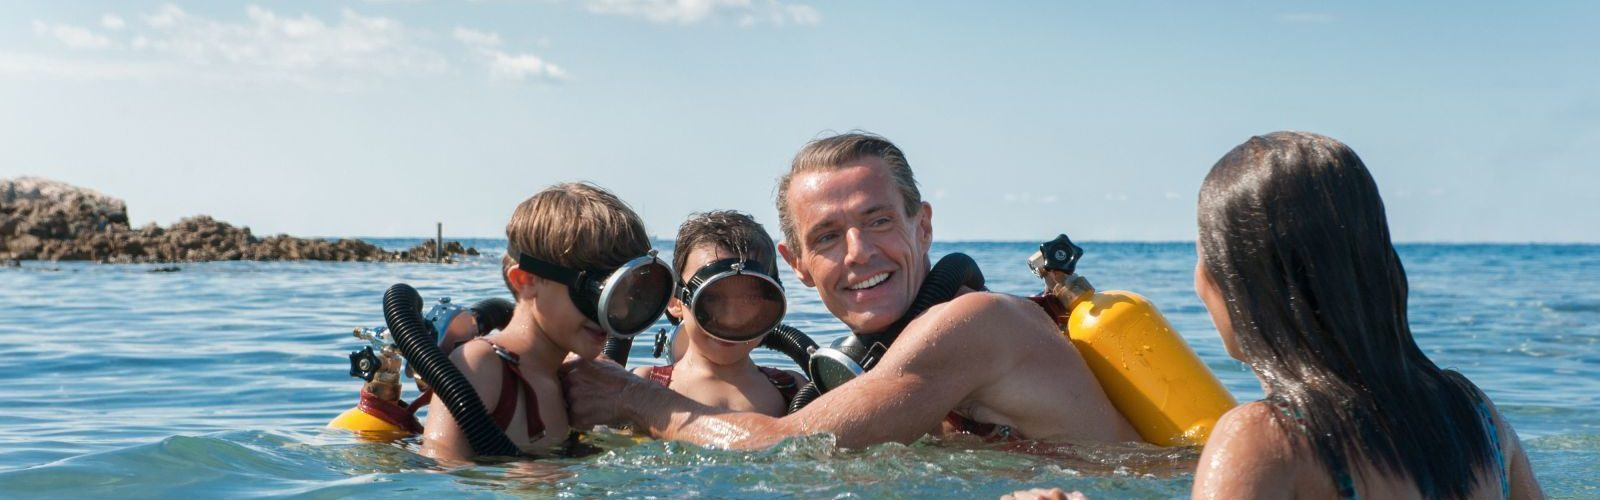 biopic jacques cousteau